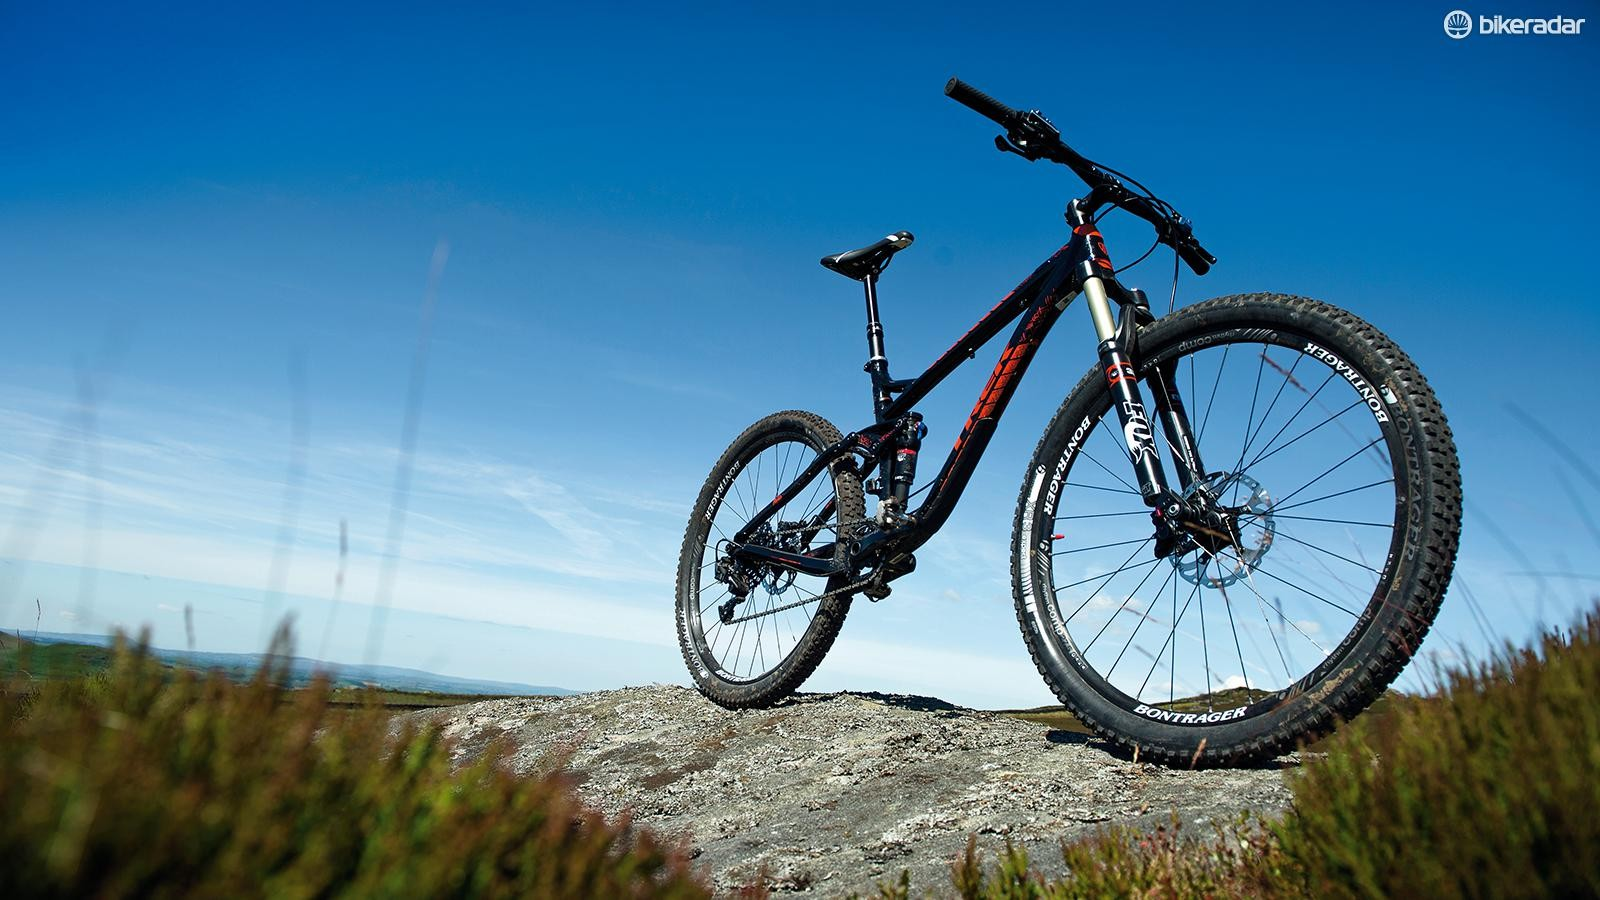 We've already had months of fun with the 2015 Trek Fuel EX 9